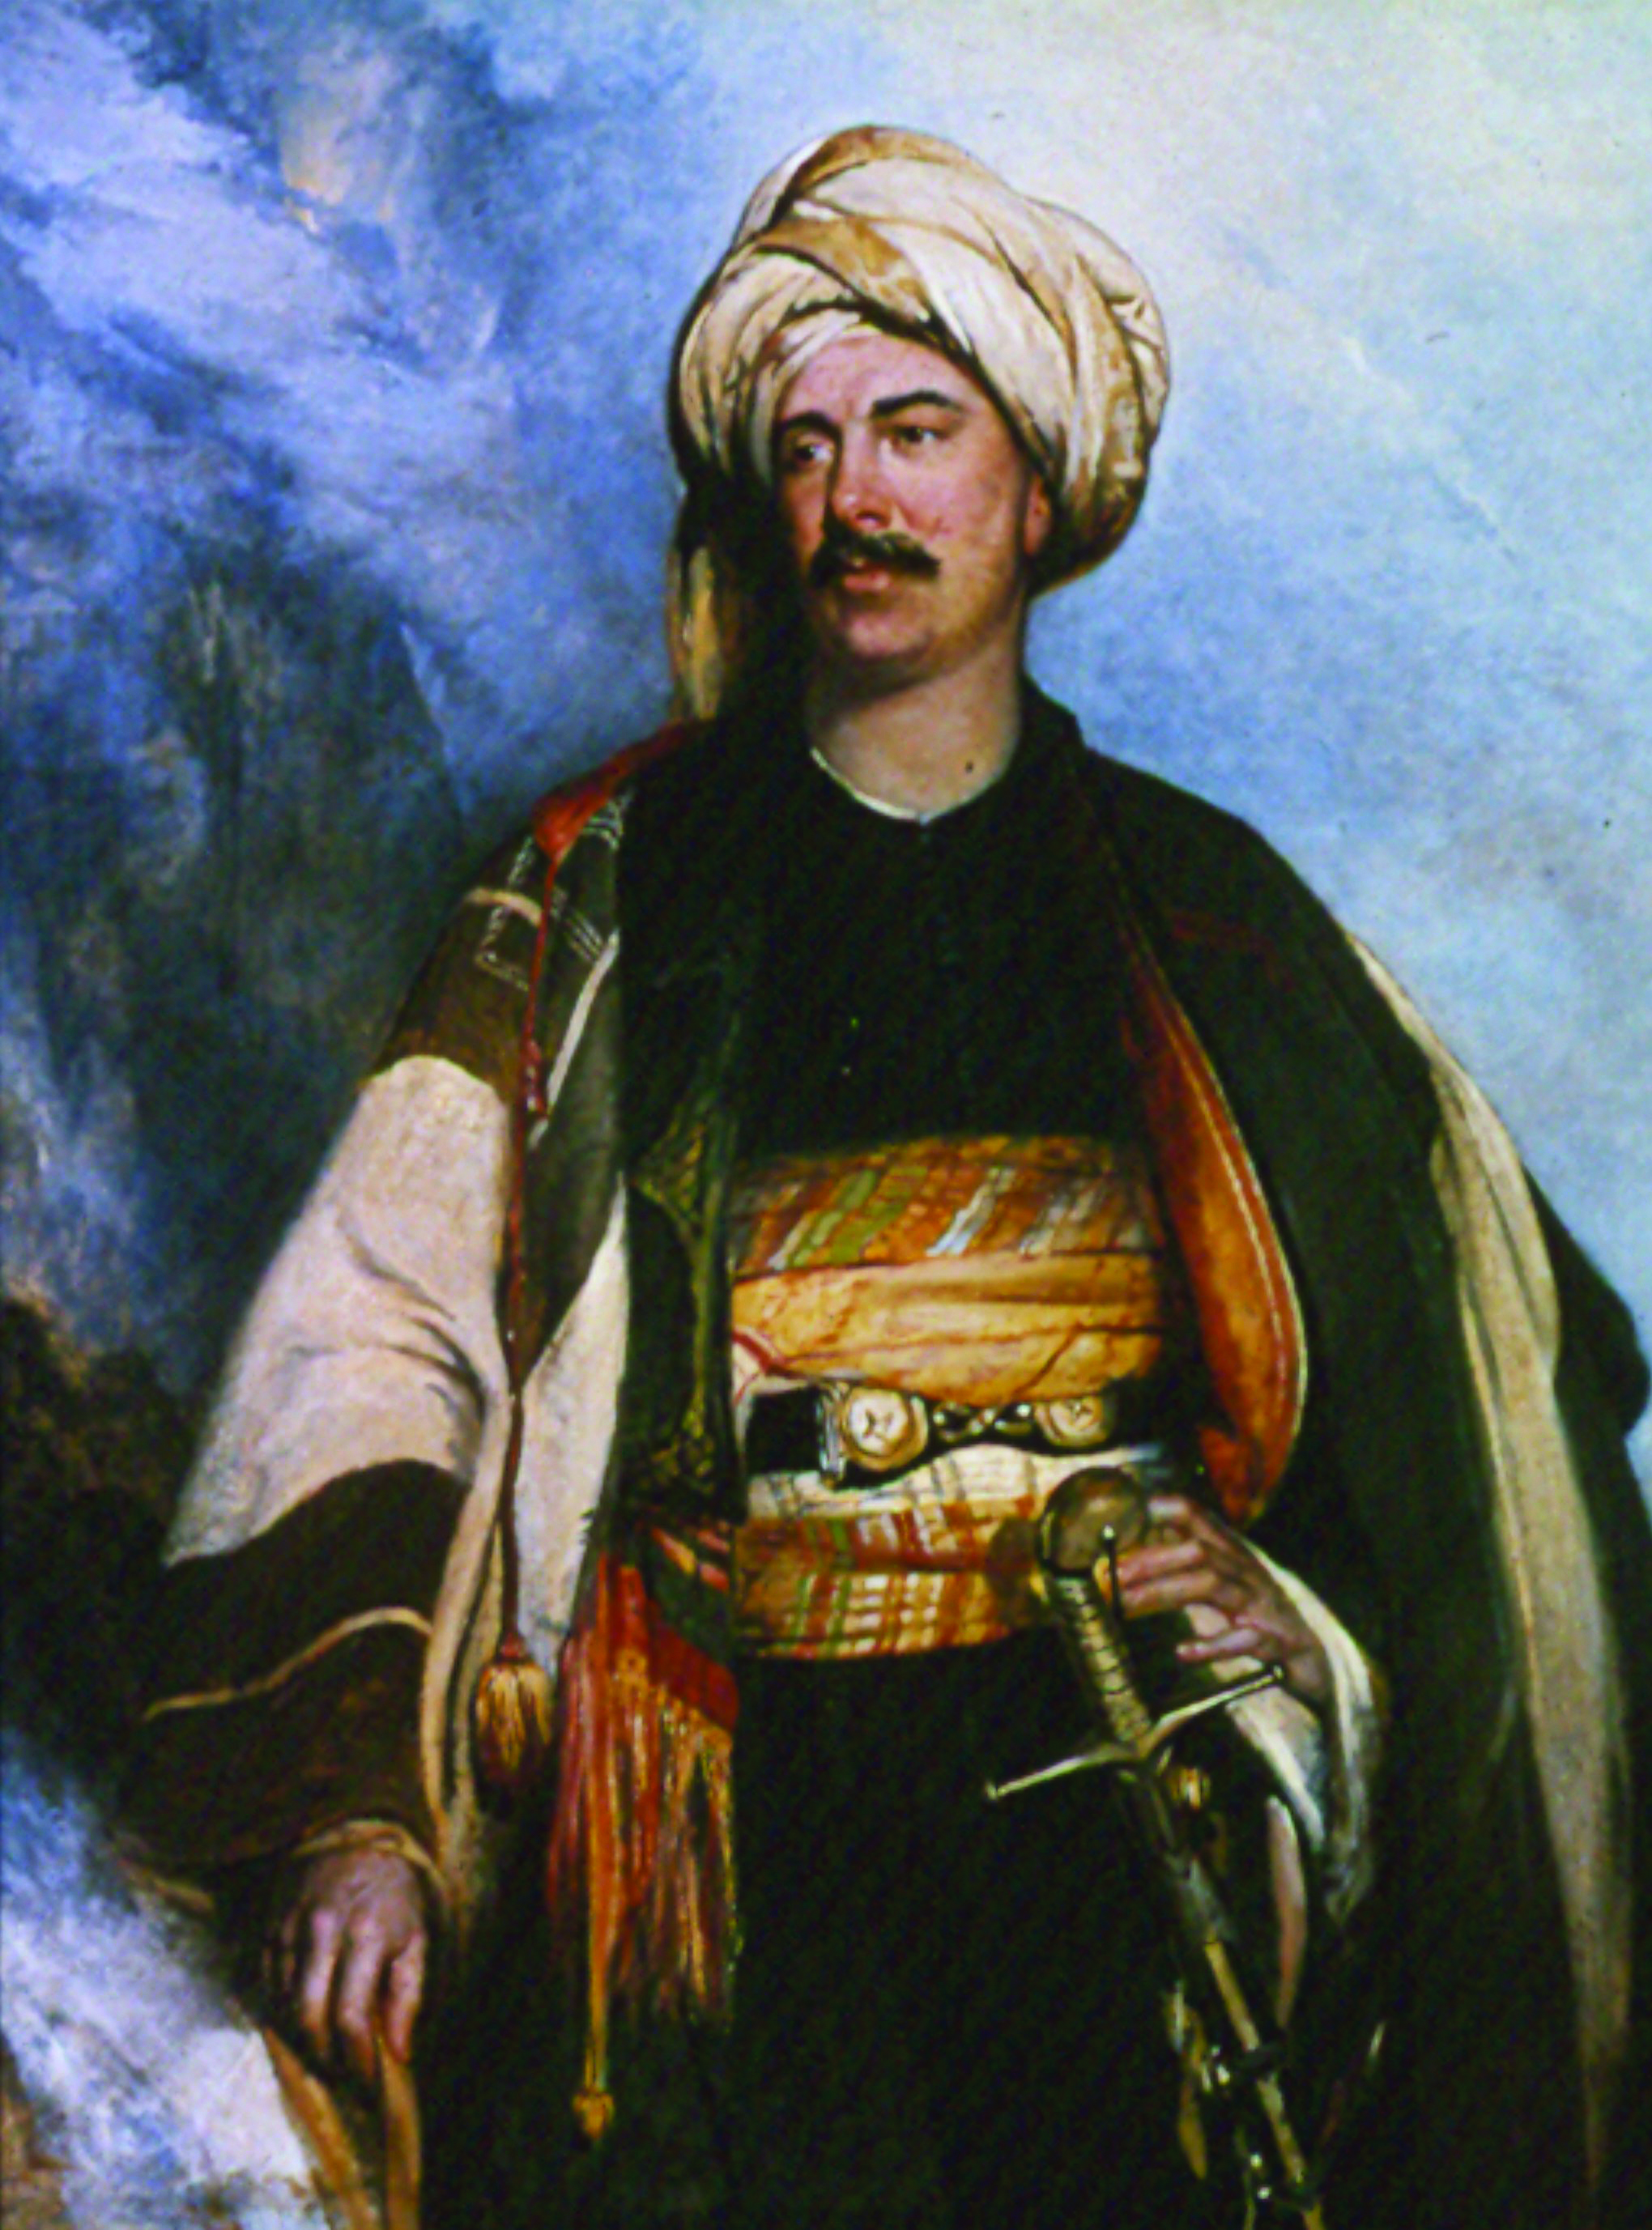 Lord Byron 1788 1824 In Albanian Dress A Sartorial Response To The Ottoman Empire